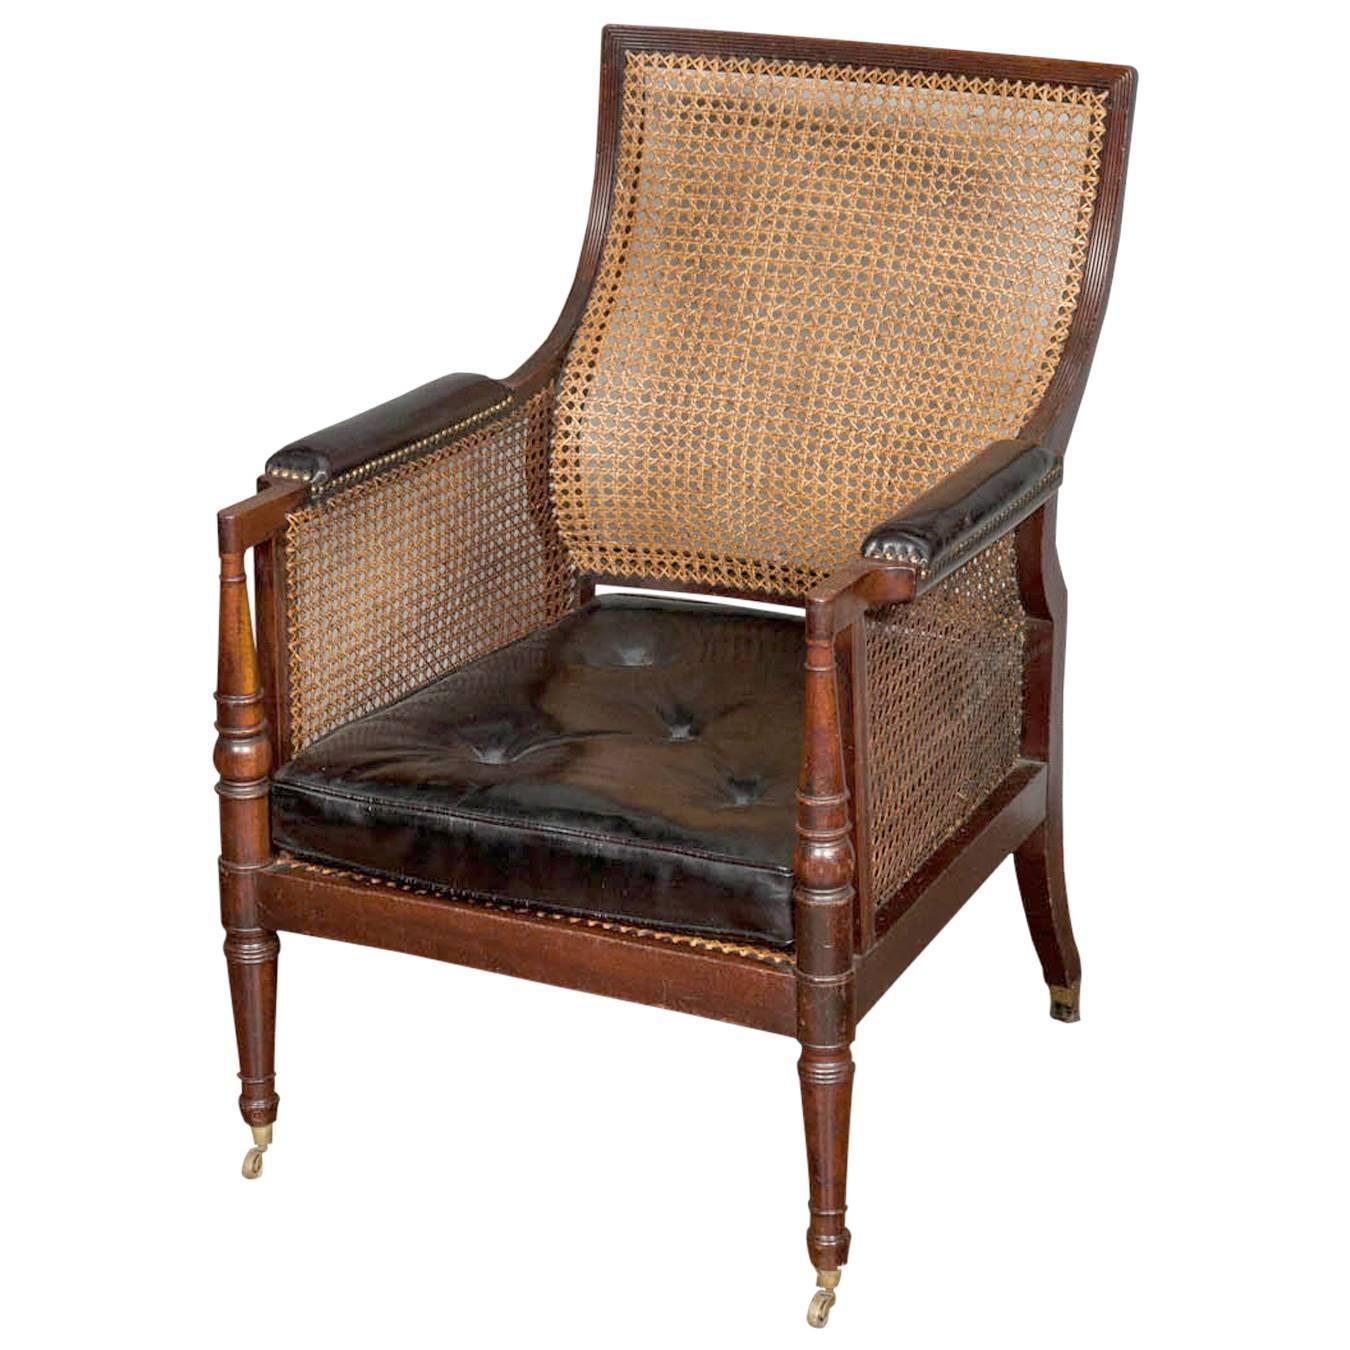 Regency Library Chair For Sale at 1stdibs